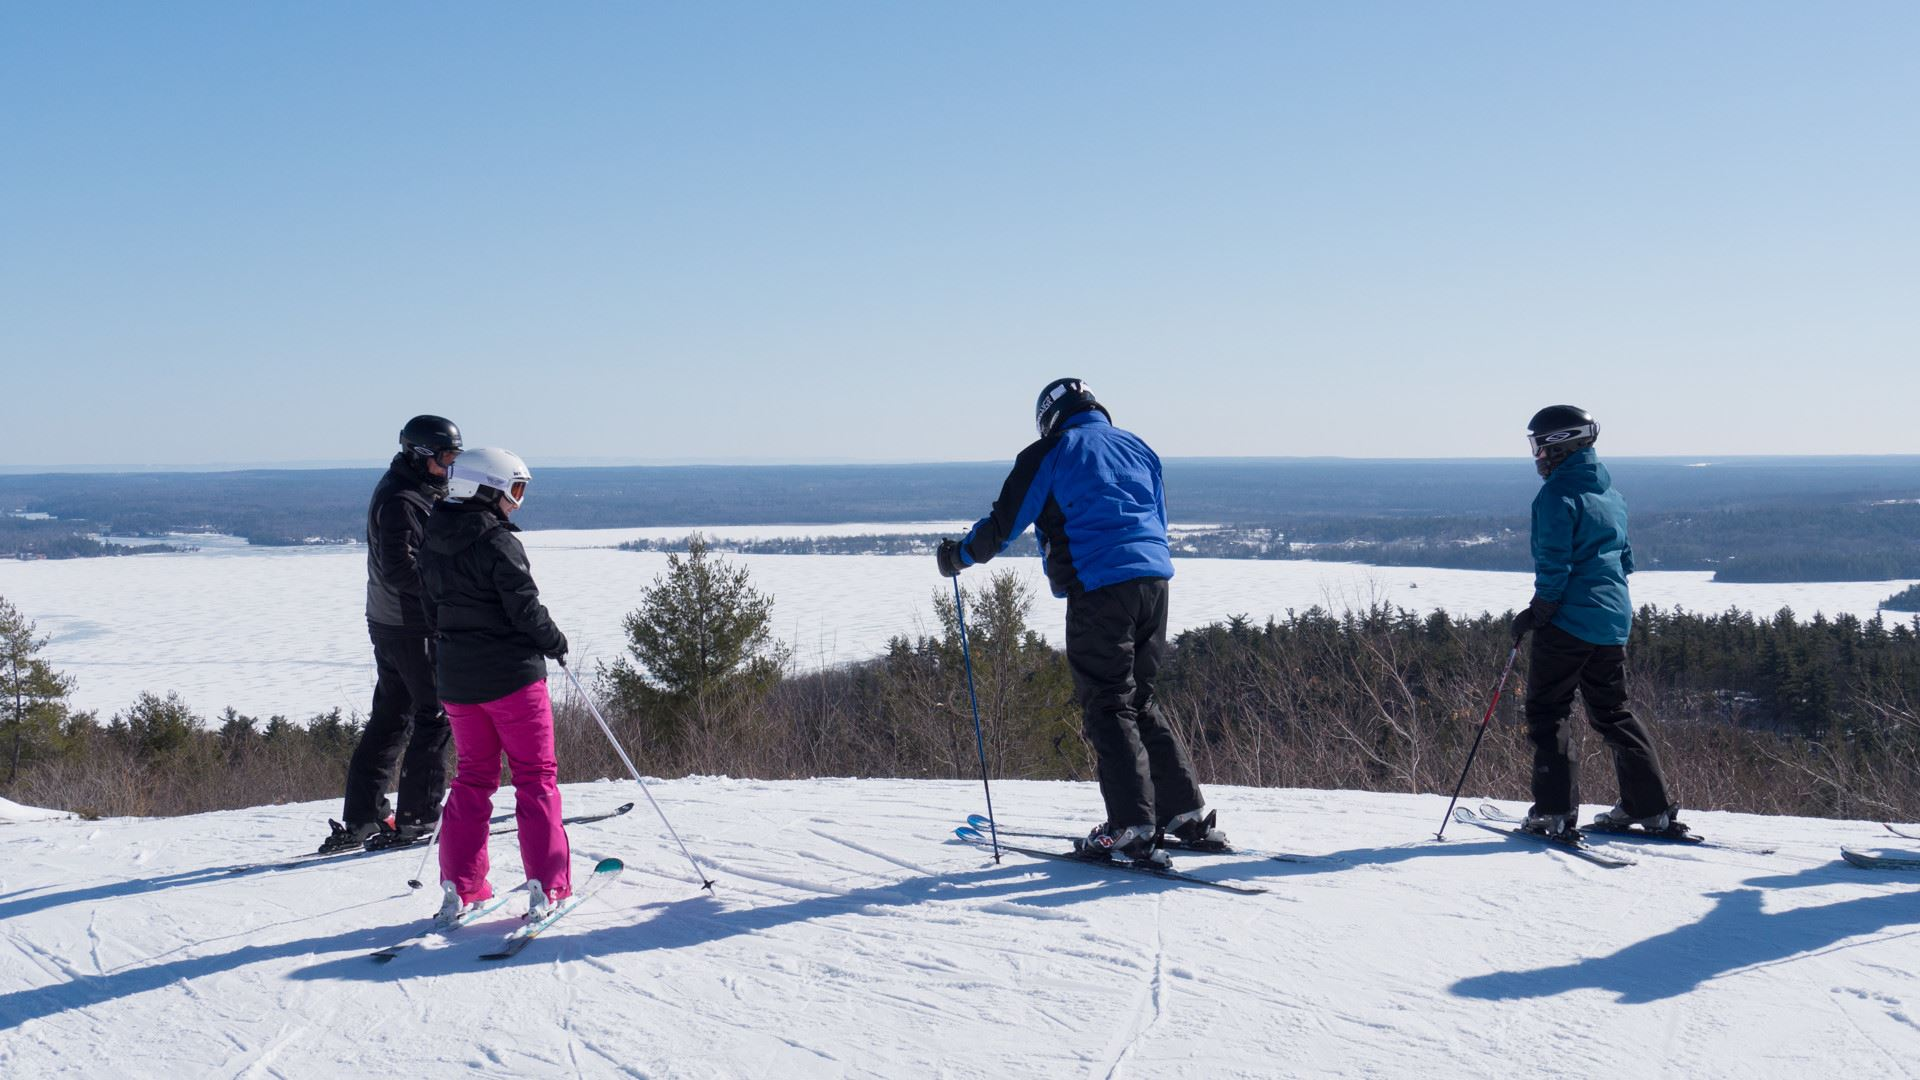 Calabogie Peaks - March 19, 2017